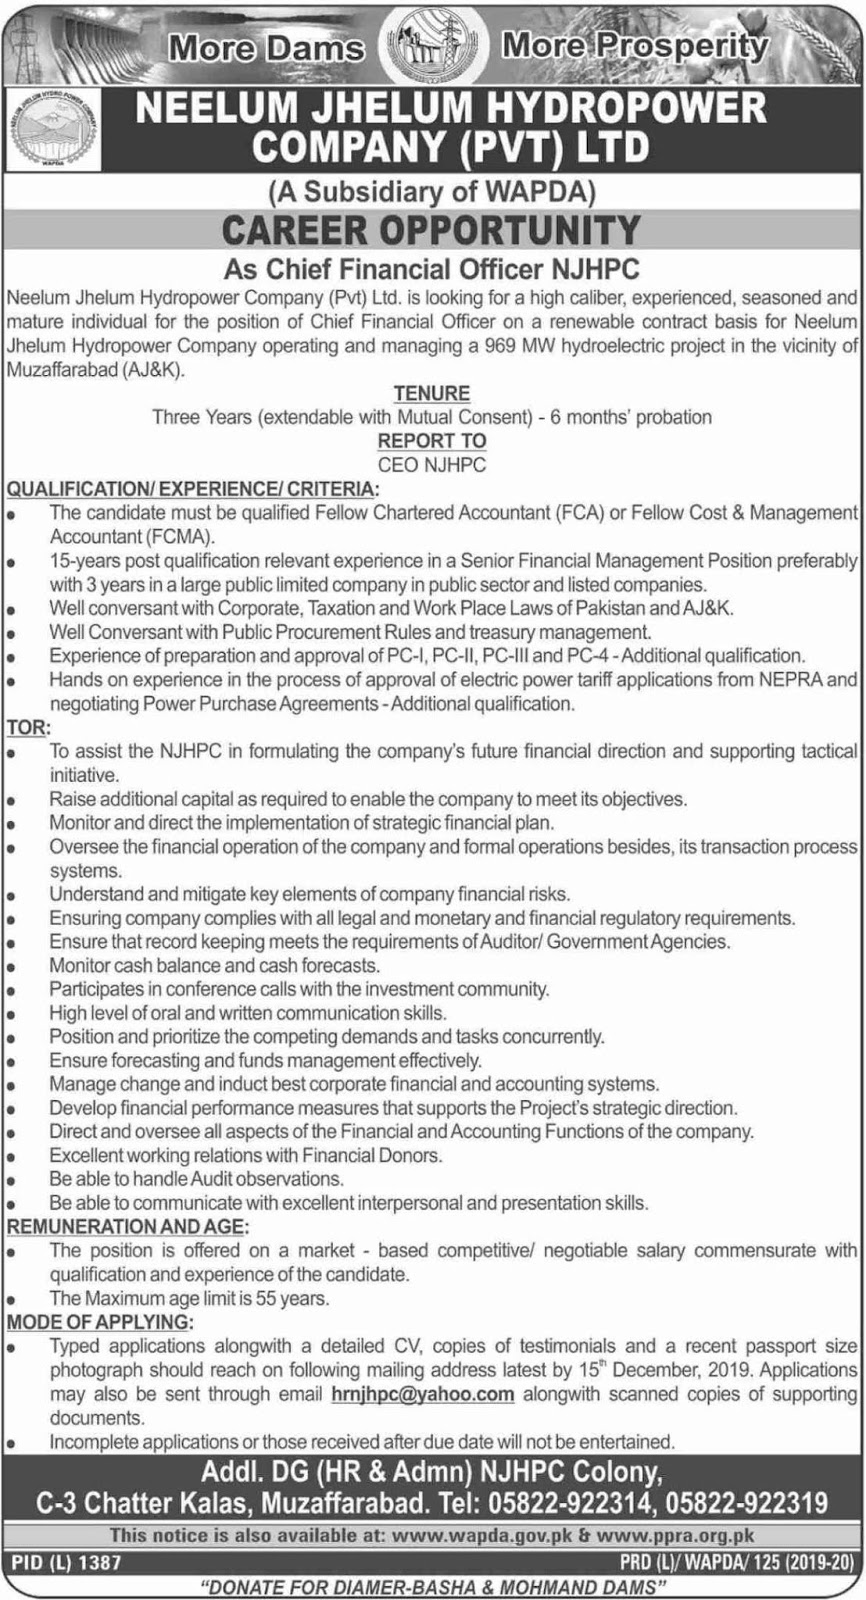 Wapda Neelum Jhelum Hydropower Company Pvt Ltd Jobs Latest